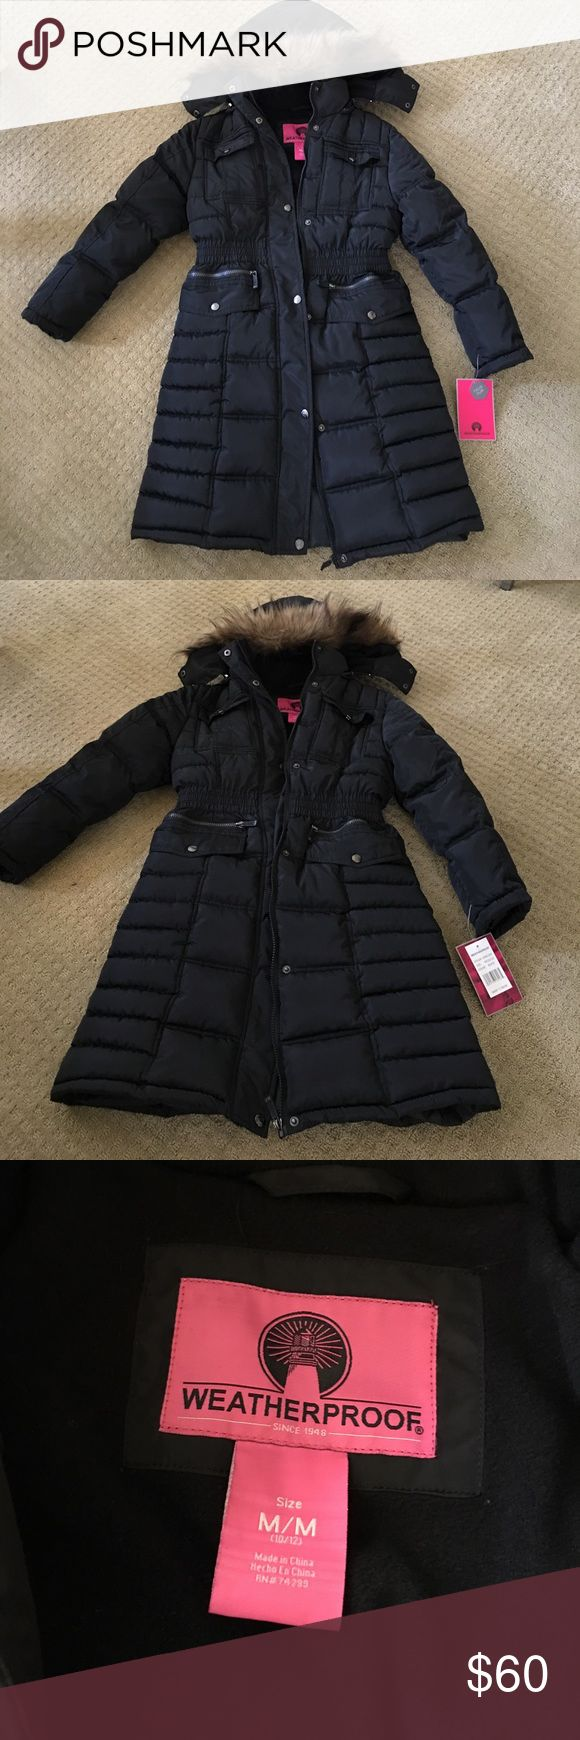 Long Winter Coat 10-12yrs Never used Weatherproof Winter coat for girl 10-12yrs. Faux fur Weatherproof Jackets & Coats Puffers